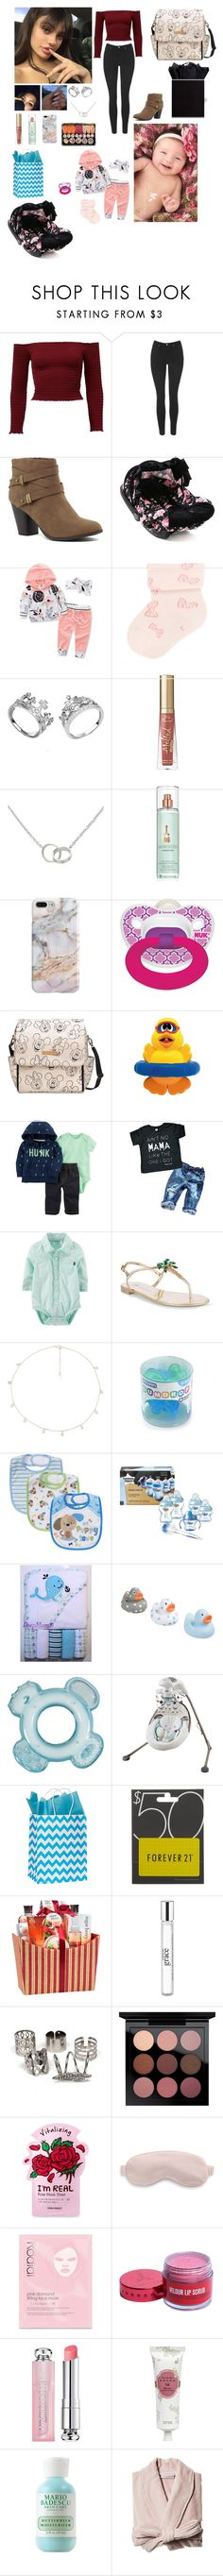 """Spending the day with Eva and Oliver. ~Kelsey"" by xx-us-anxns-xx ❤ liked on Polyvore featuring Calvin Klein, Too Faced Cosmetics, Cartier, Recover, Petunia Pickle Bottom, Giuseppe Zanotti, The M Jewelers NY, Gymboree, Carter's and Munchkin"